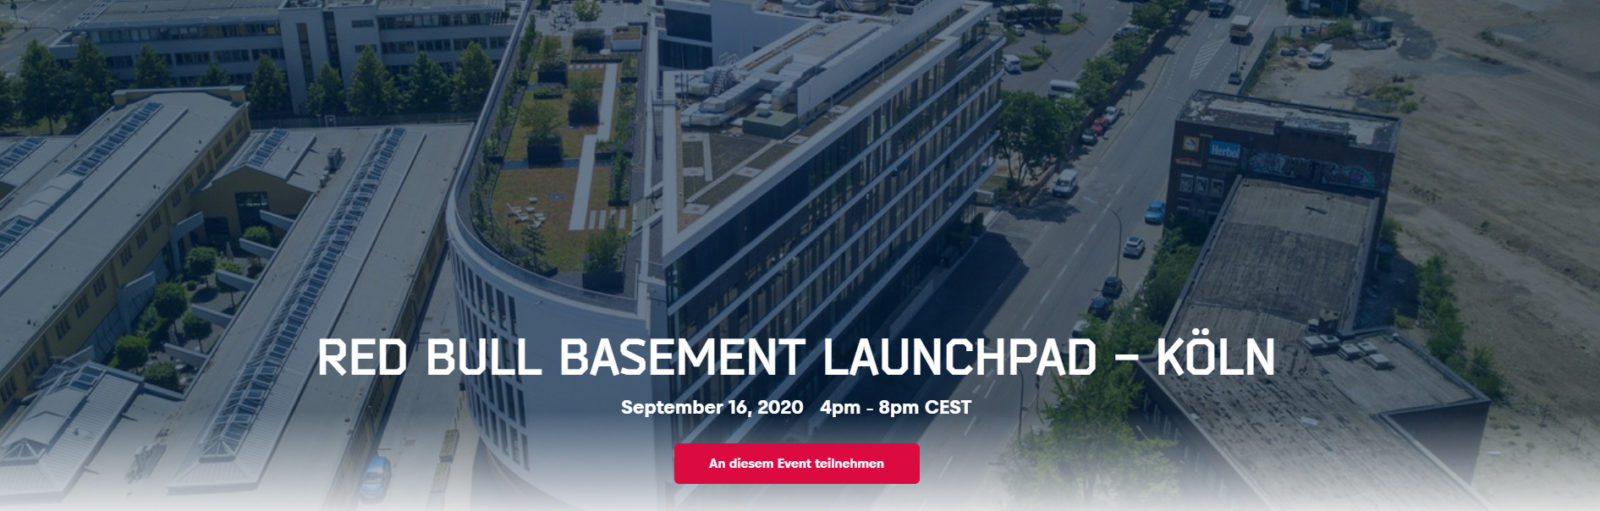 RED BULL BASEMENT LAUNCHPAD – KÖLN am 16.09.2020